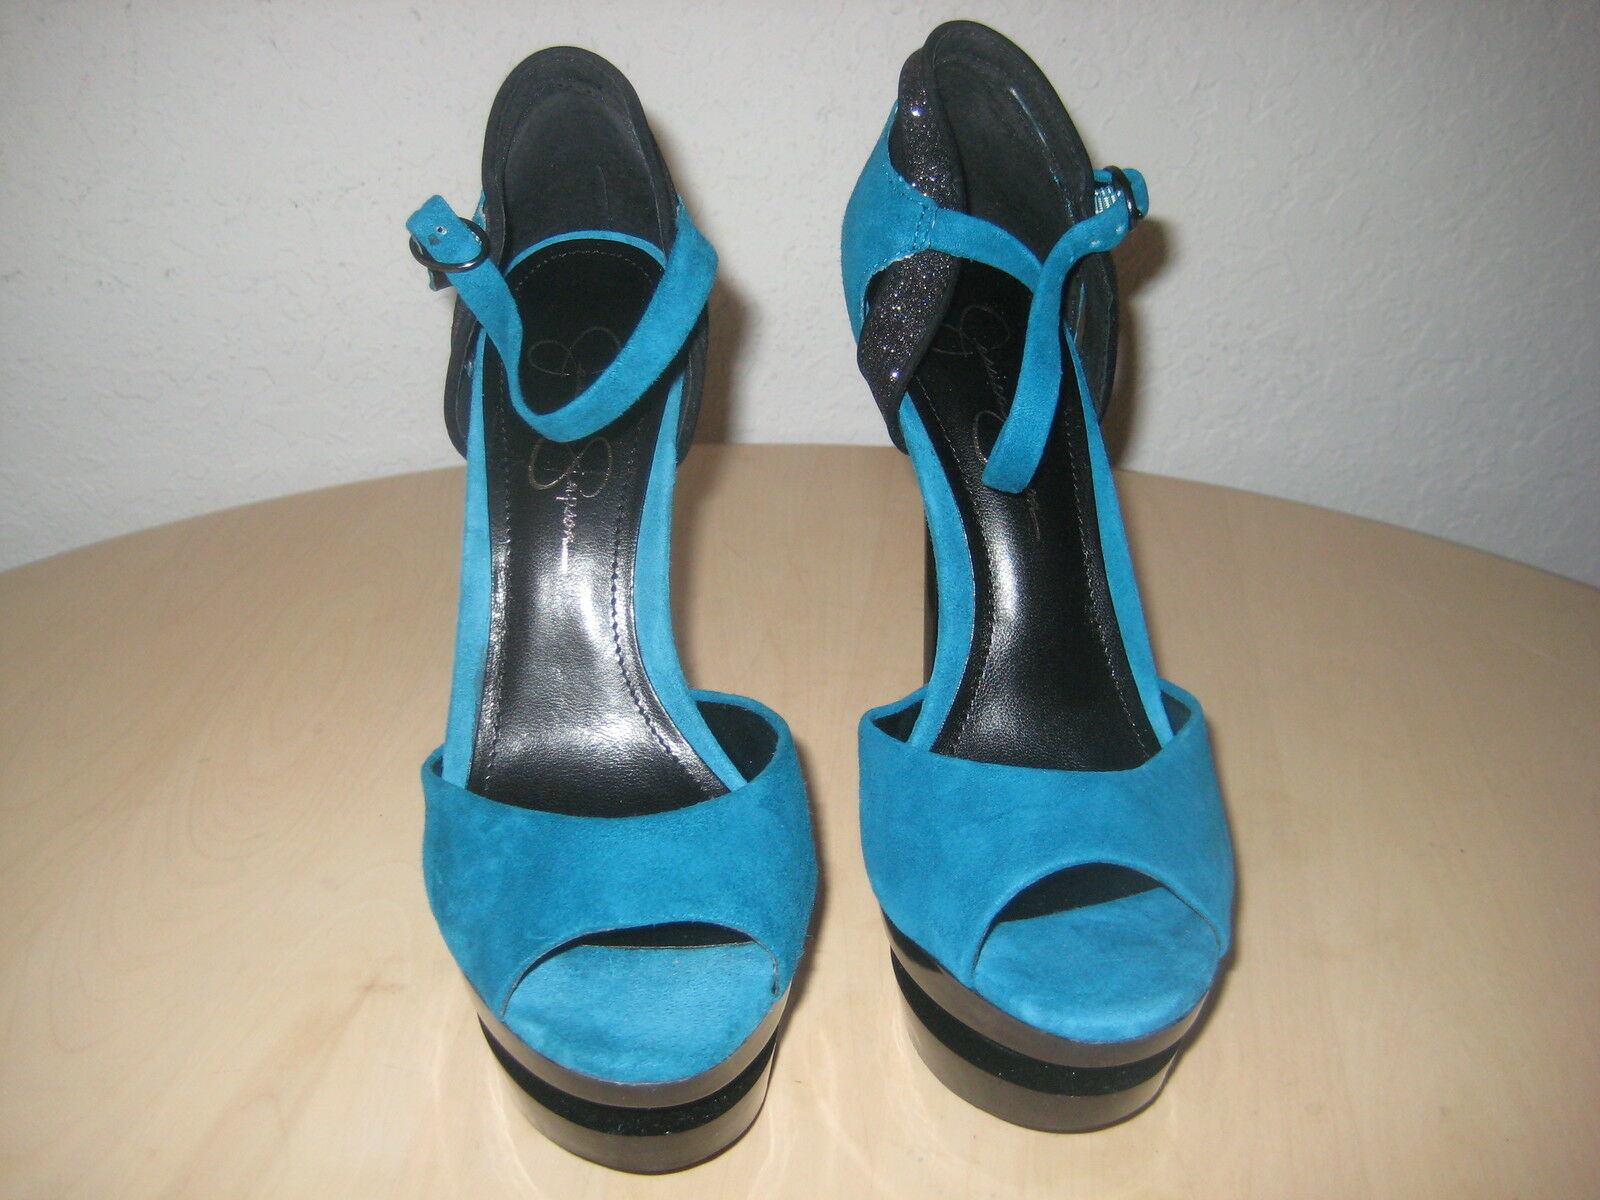 Jessica Simpson Shoes Size 8.5 M Womens New Casper Emerald Suede Open Toe Heels image 3